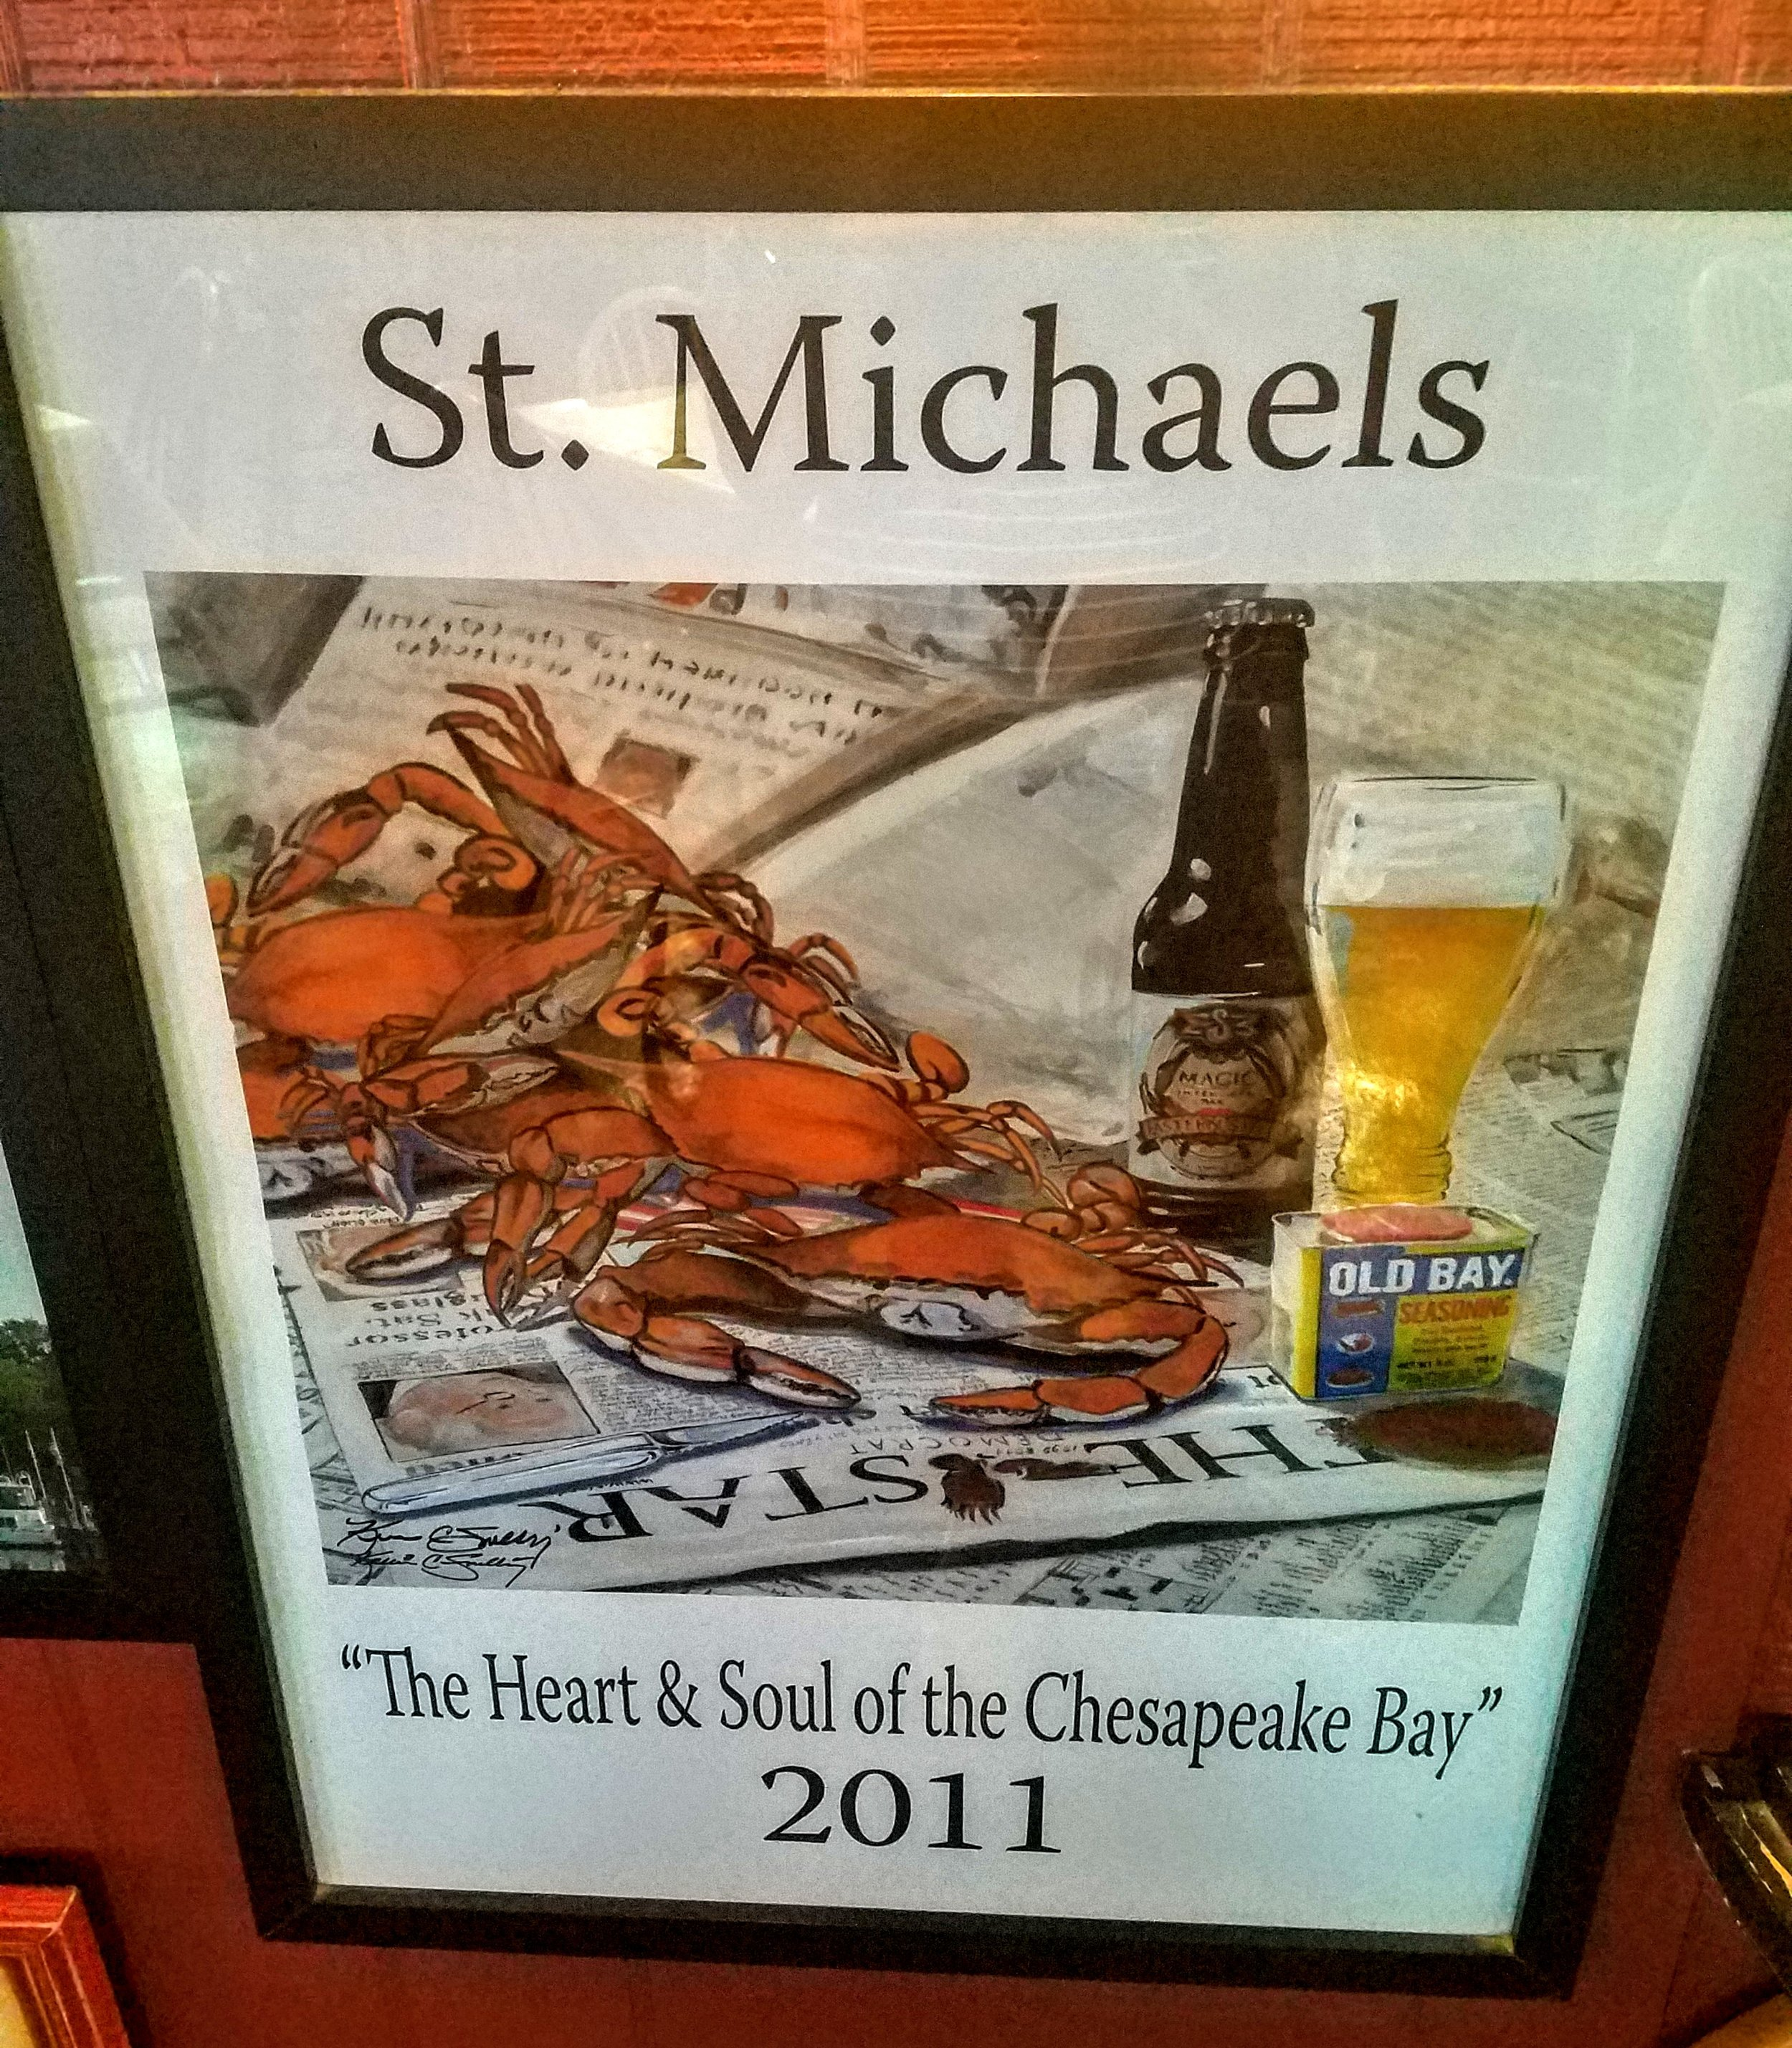 Famous for their blue crab